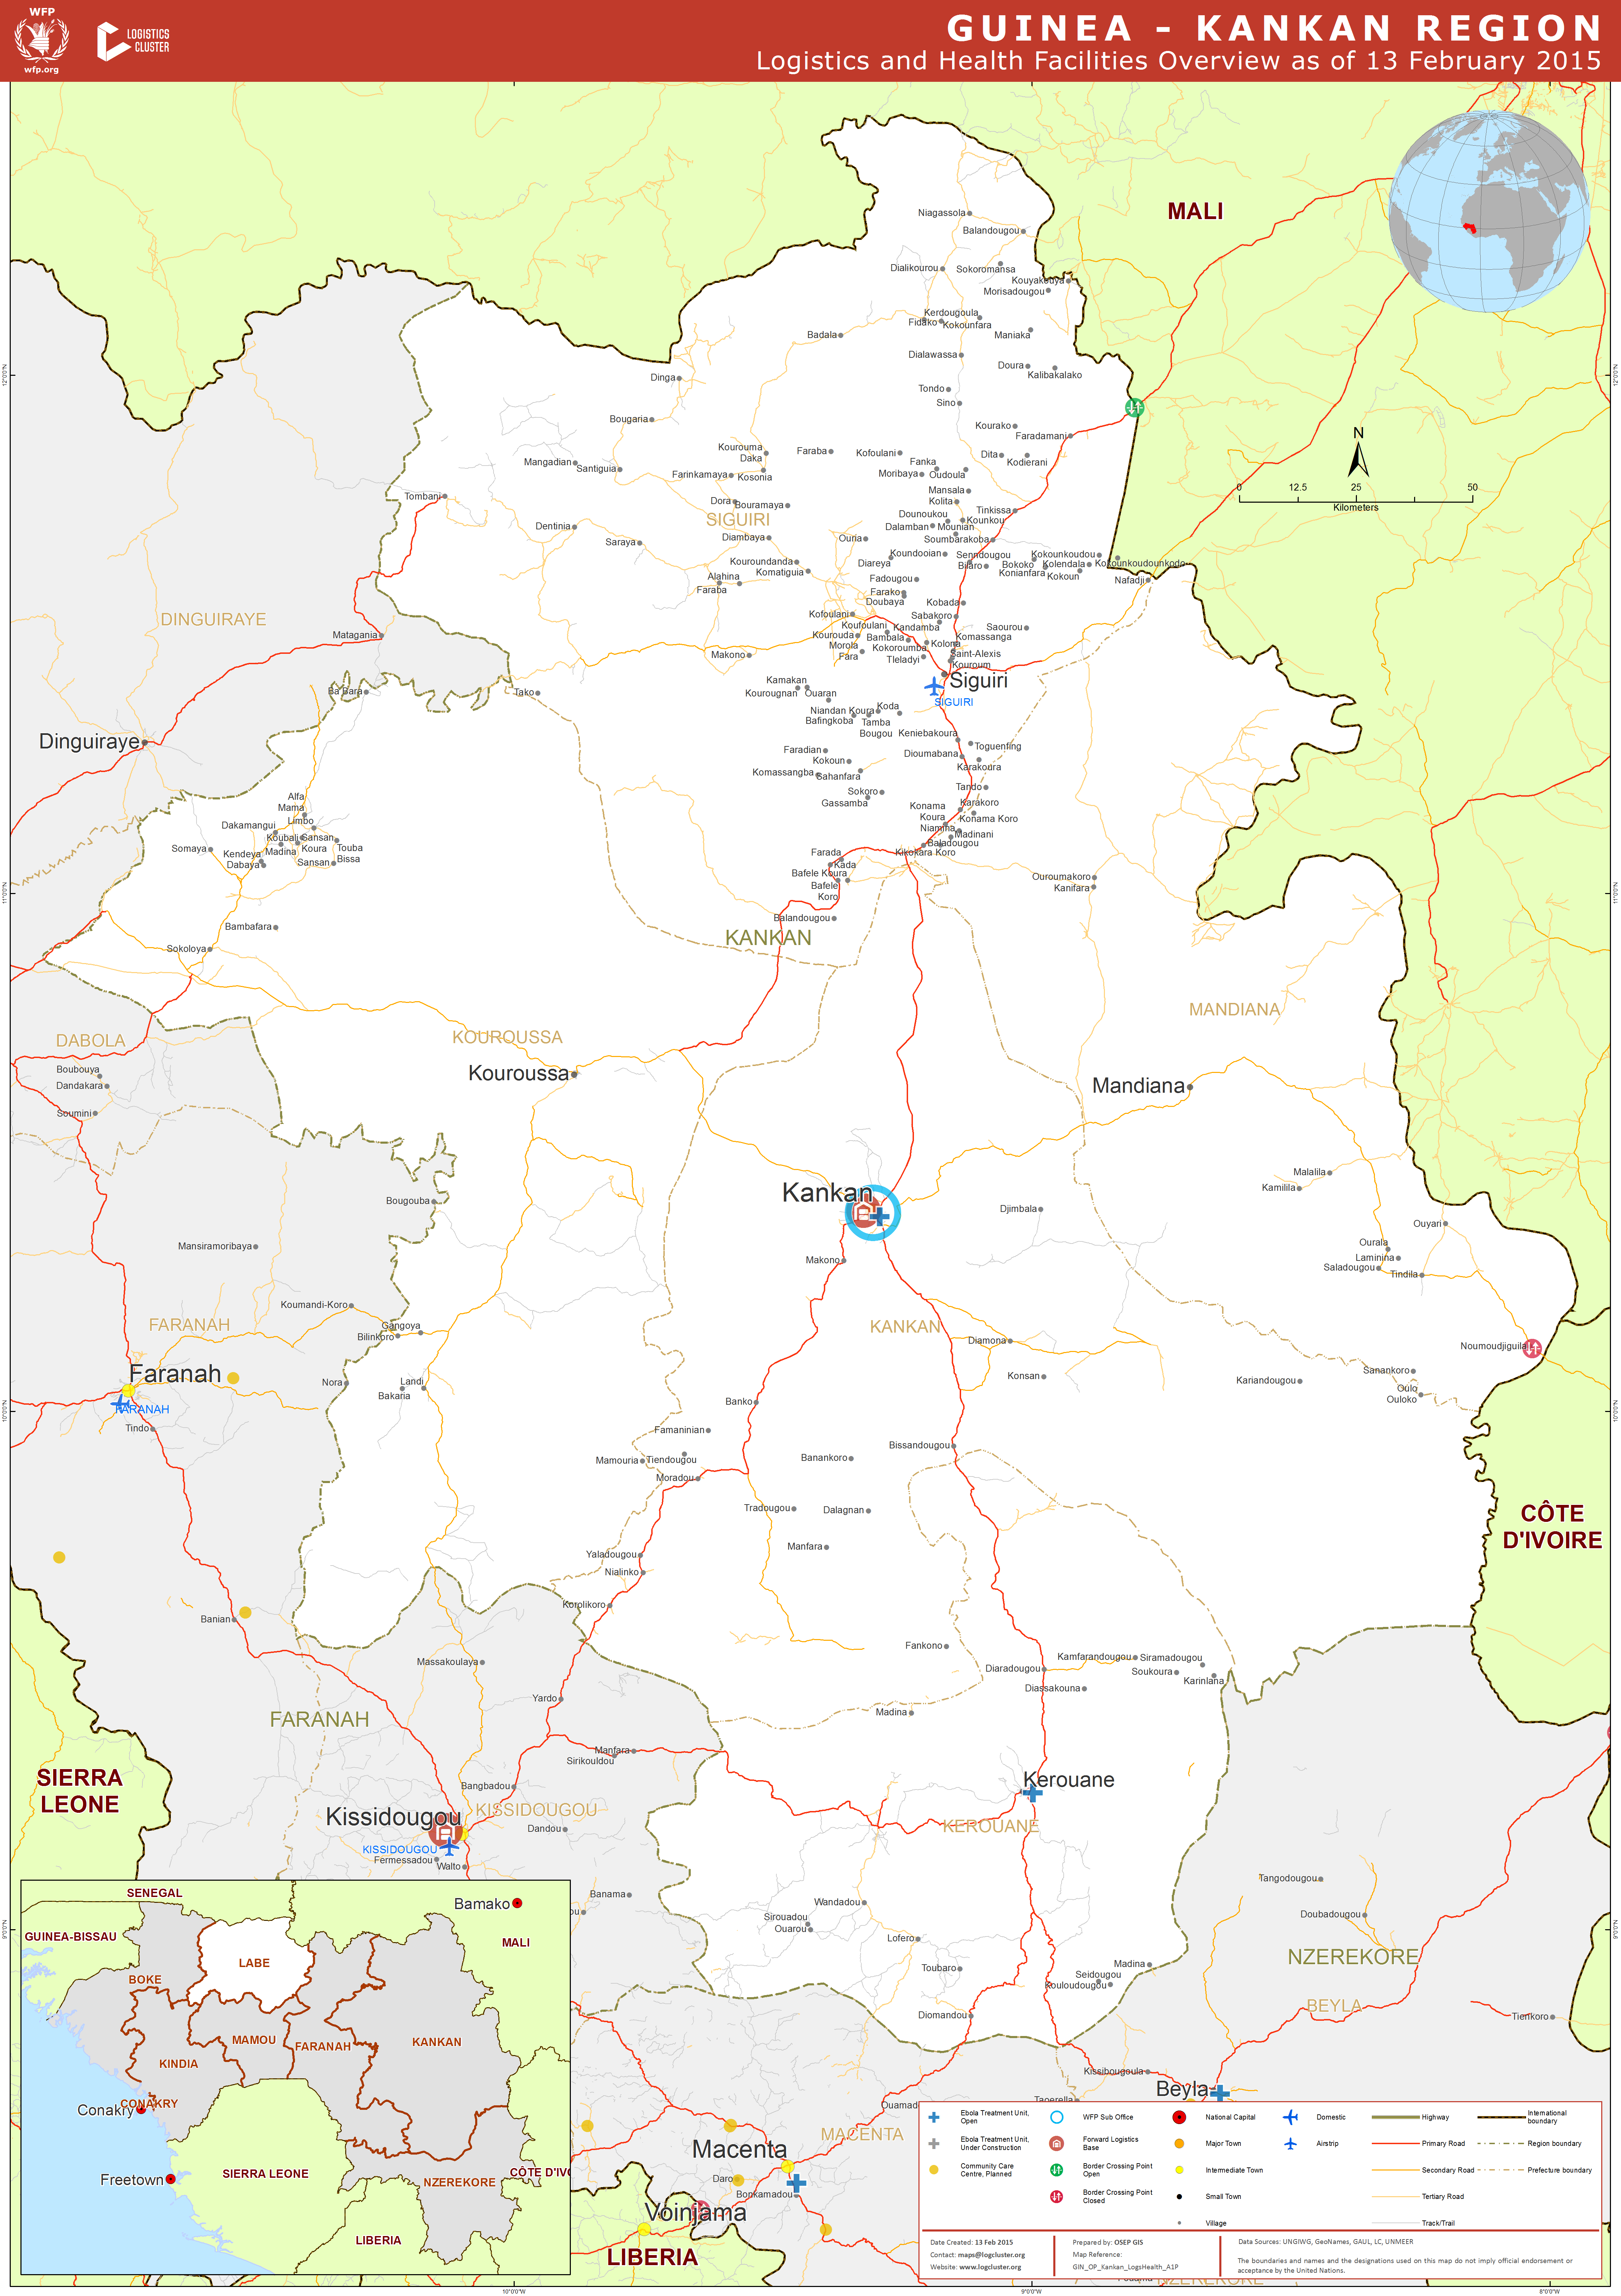 Guinea Kankan Region Logistics and Health Facilities Overview as